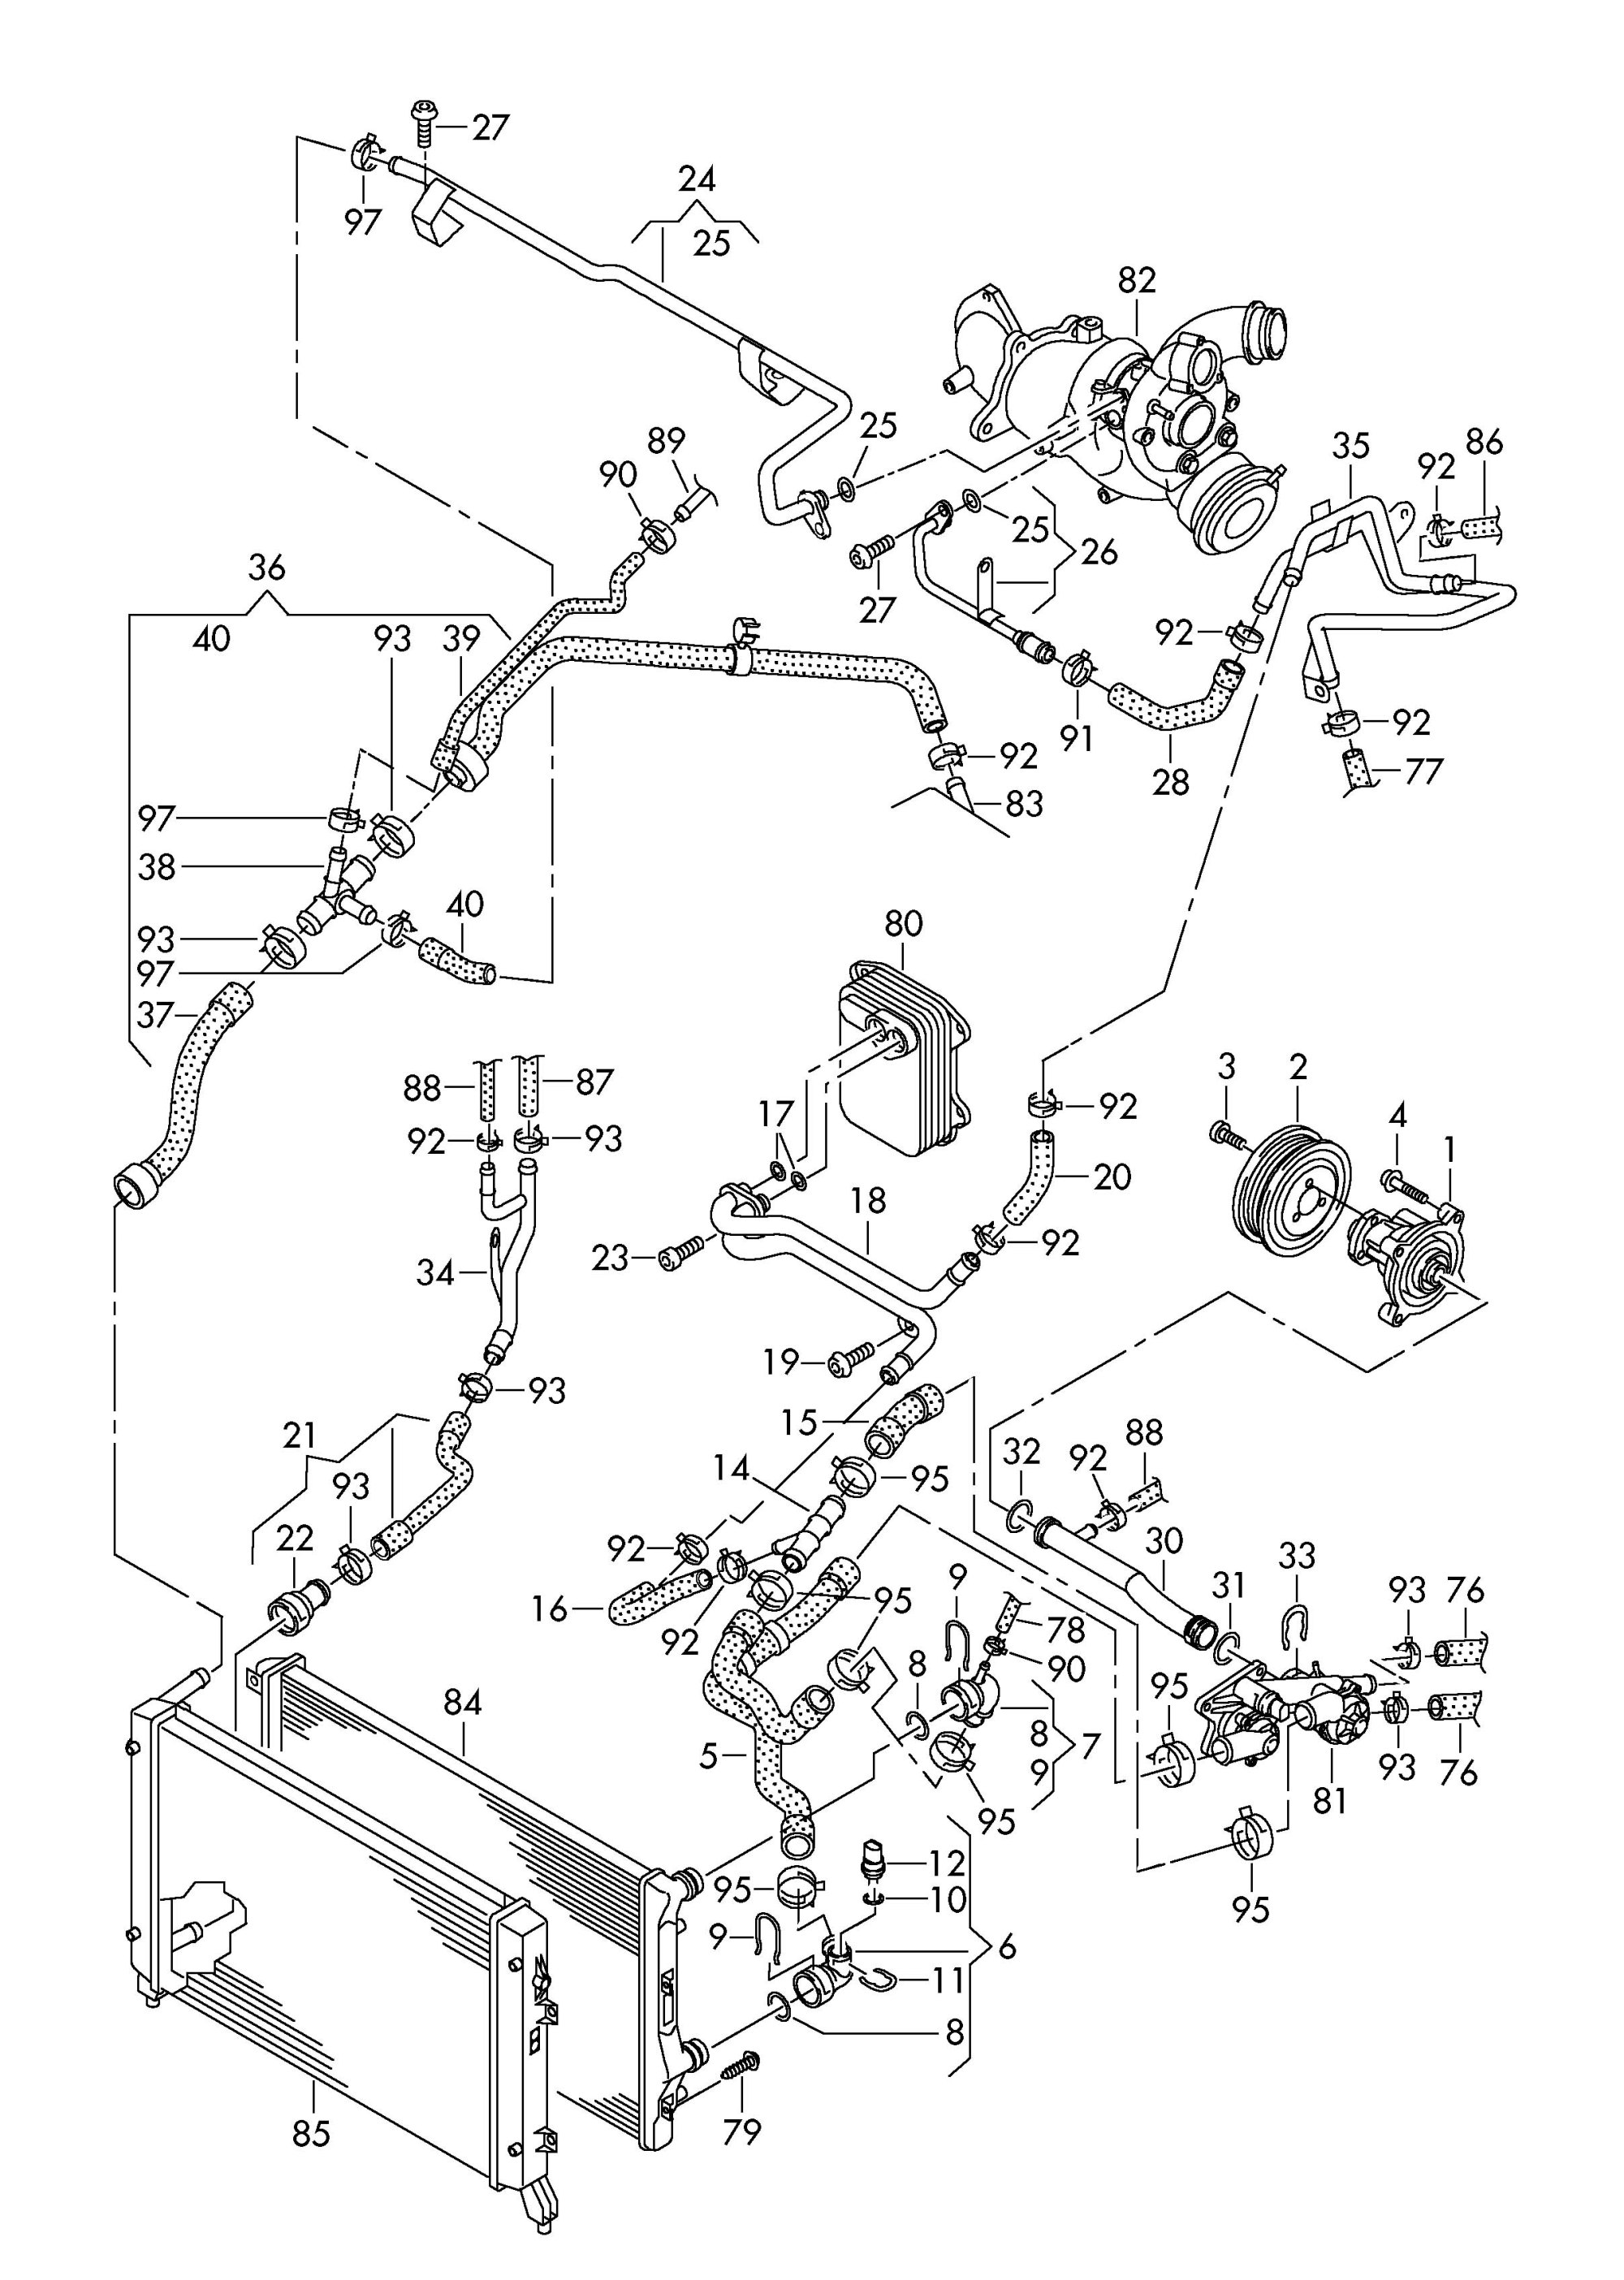 hight resolution of 2002 volkswagen pat engine diagram u2022 wiring diagram for free 4 cylinder engine diagram v6 engine